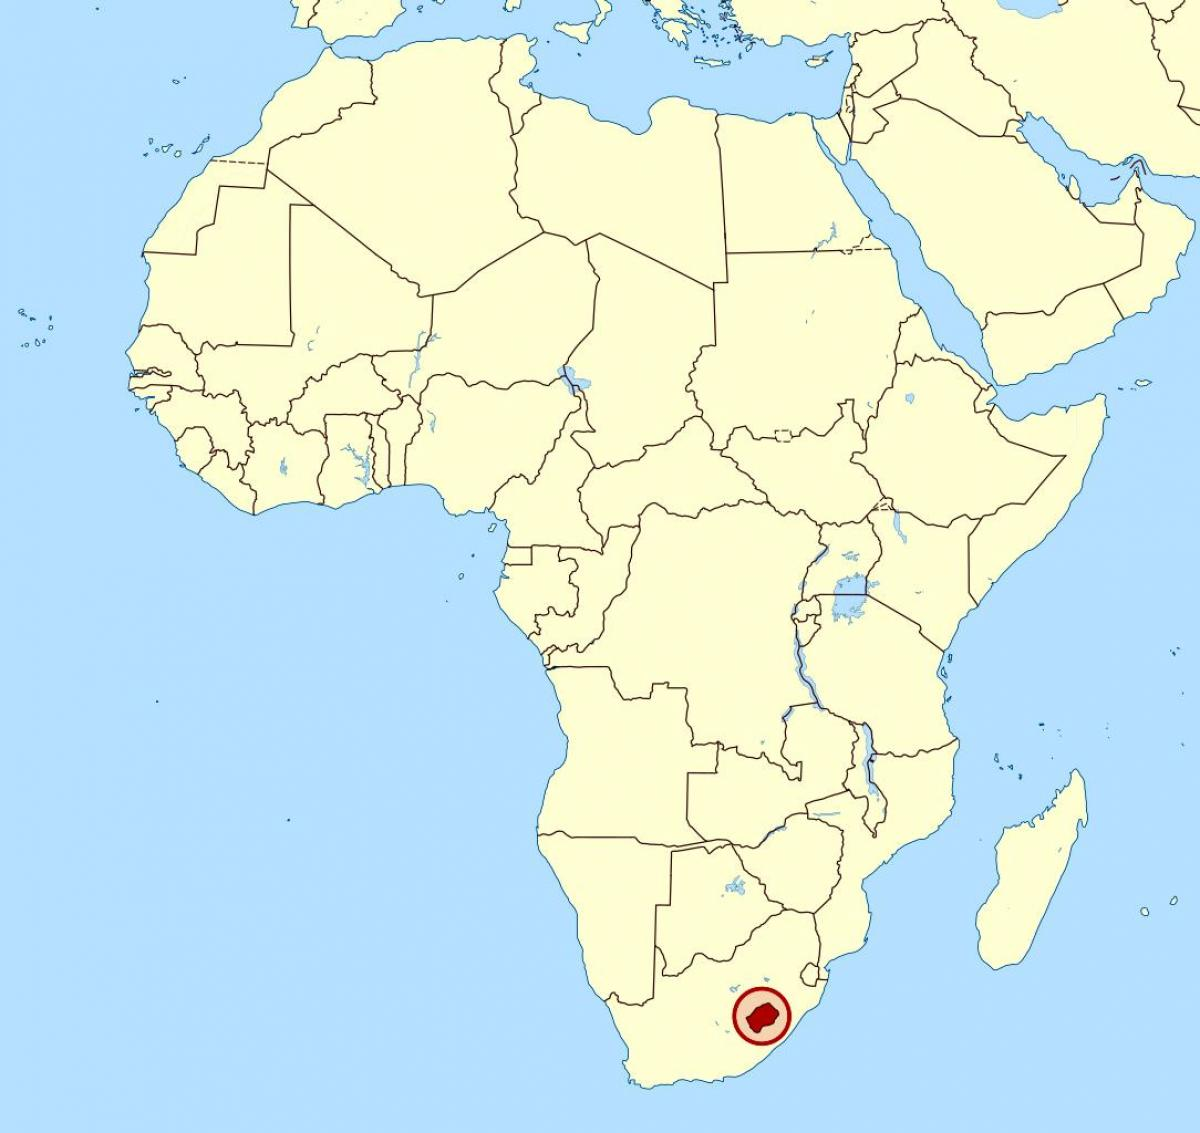 Lesotho Africa Map Lesotho In Africa Map Southern Africa Africa